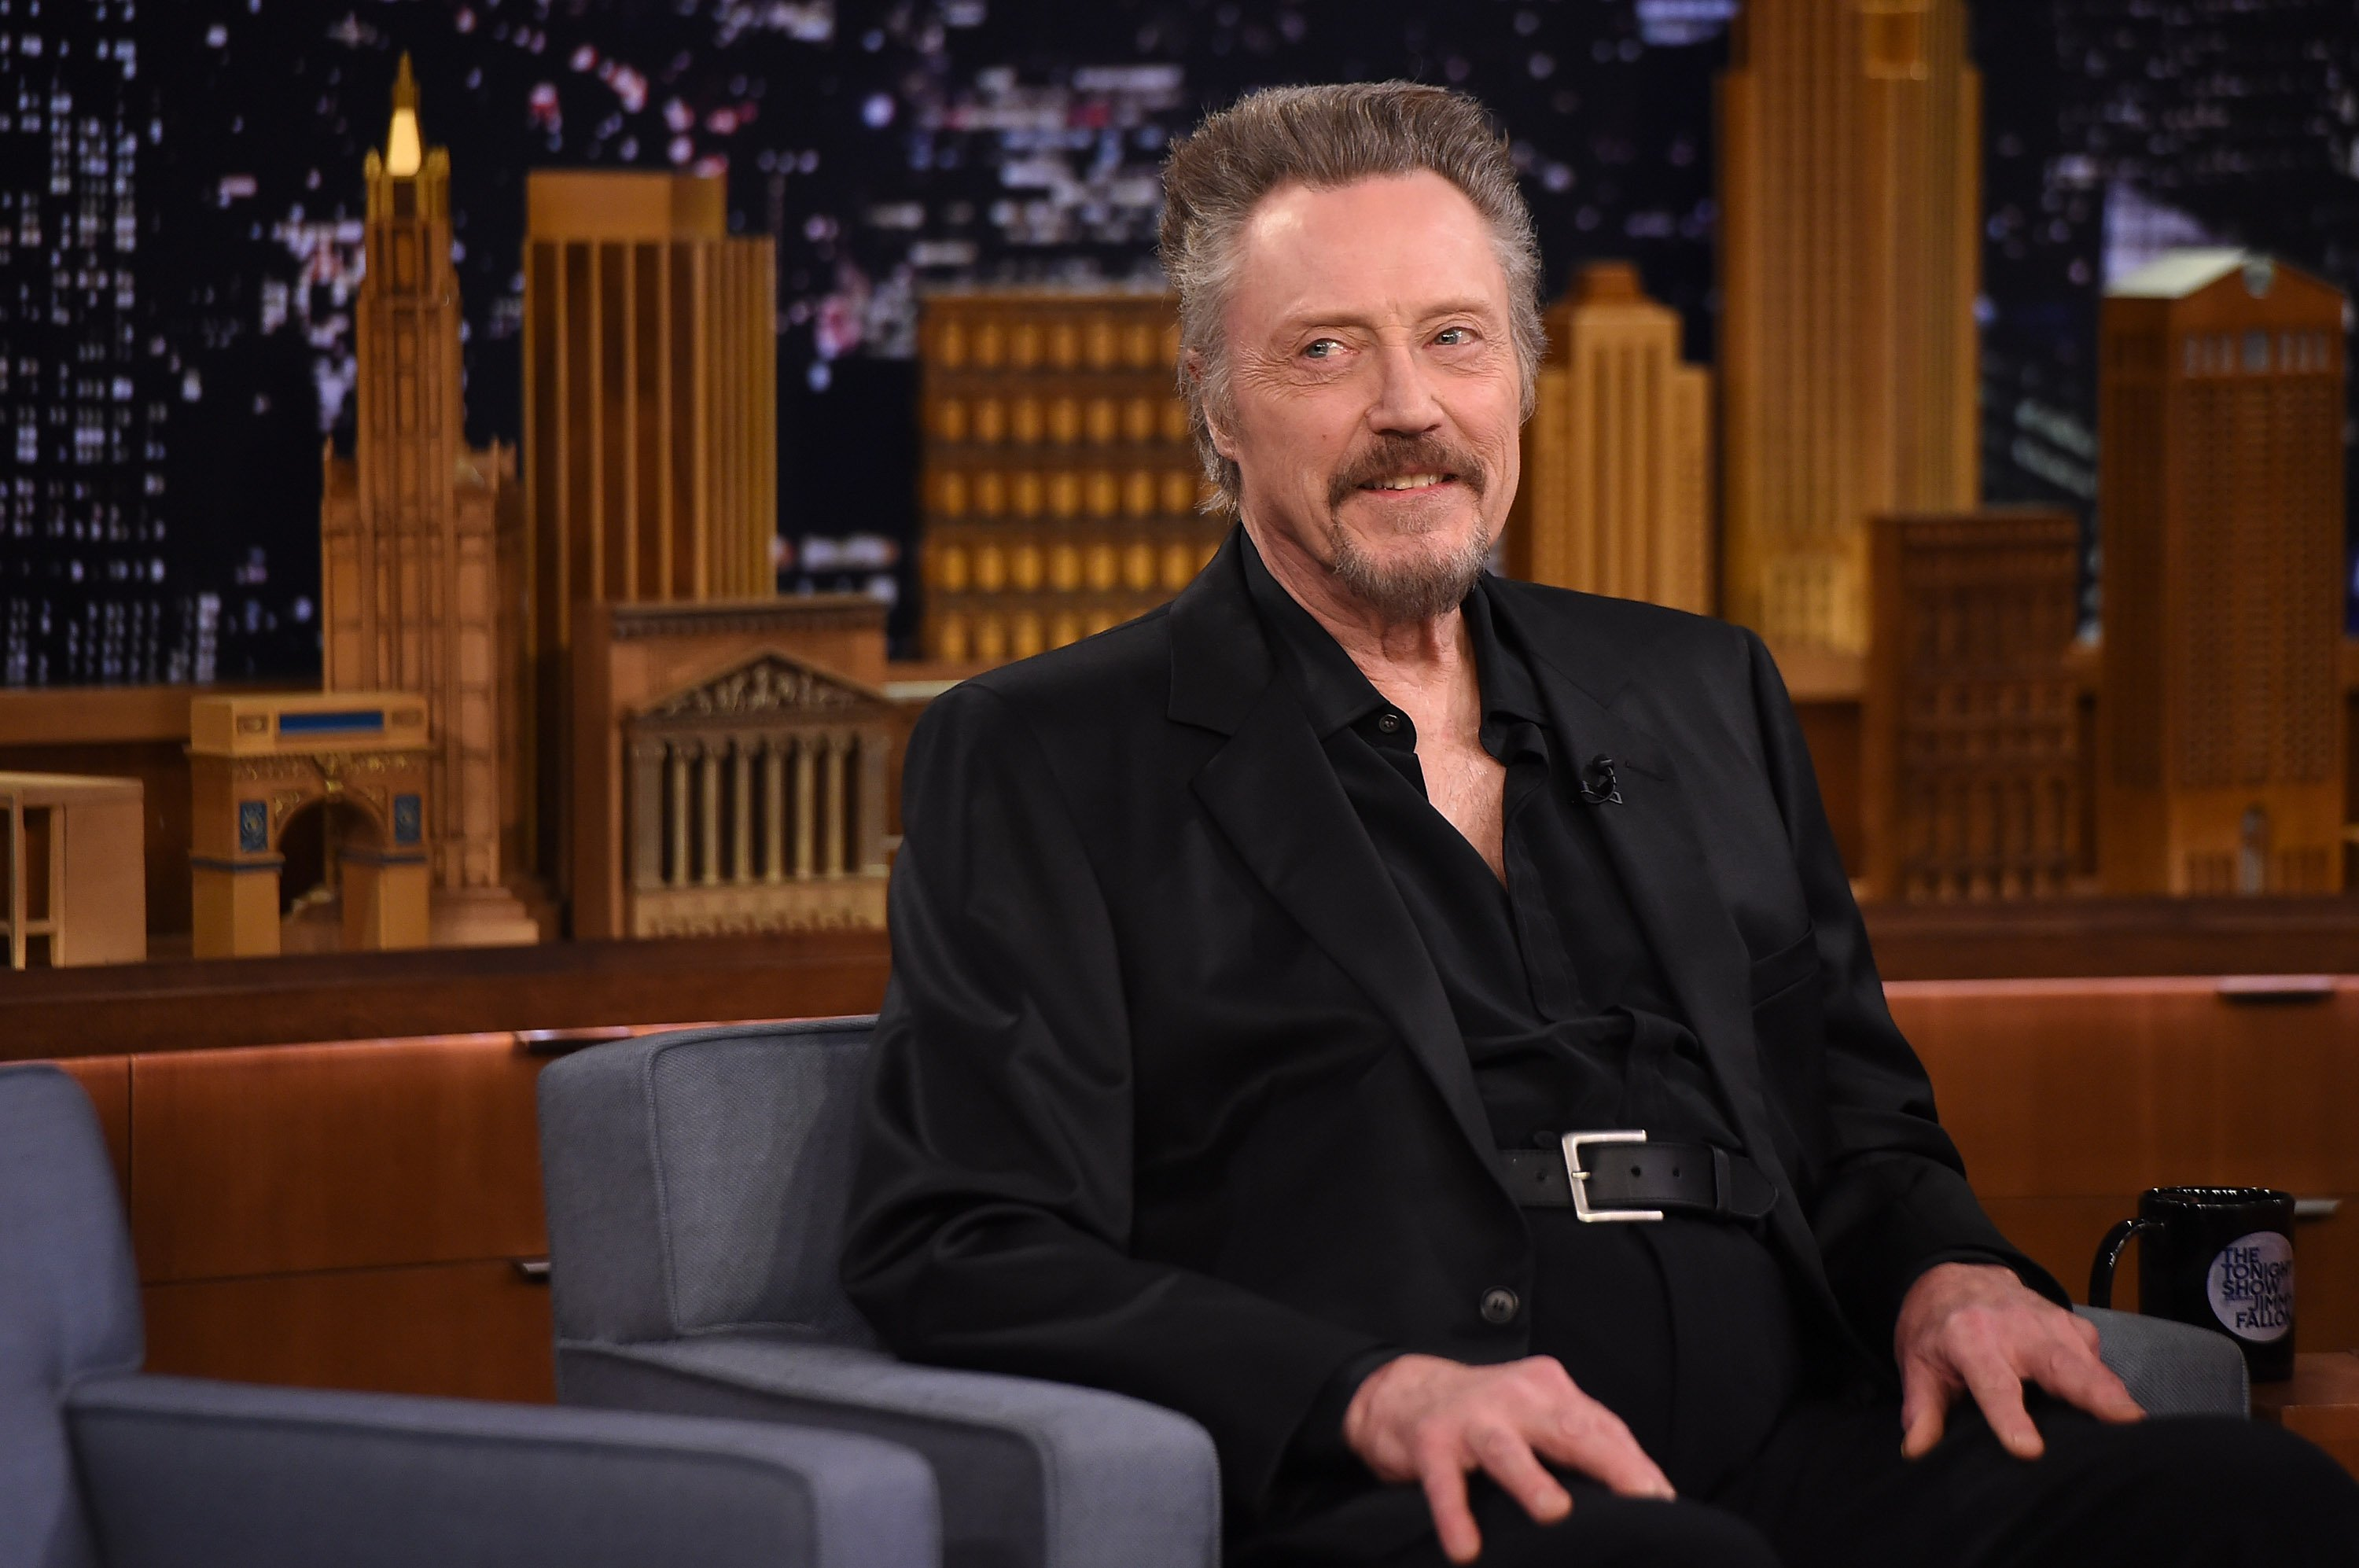 """Christopher Walken Visits """"The Tonight Show Starring Jimmy Fallon"""" at Rockefeller Center on November 26, 2014 in New York City.   Source: Getty Images"""